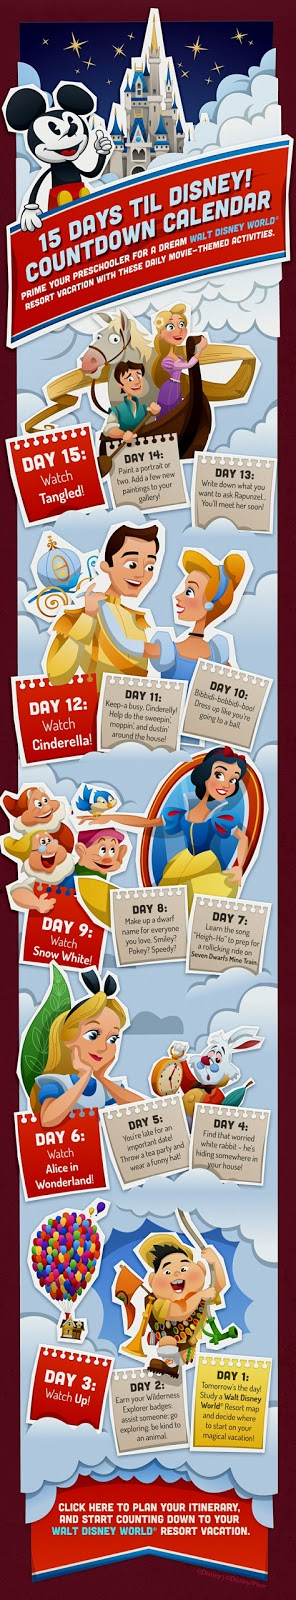 15 Day Disney Countdown